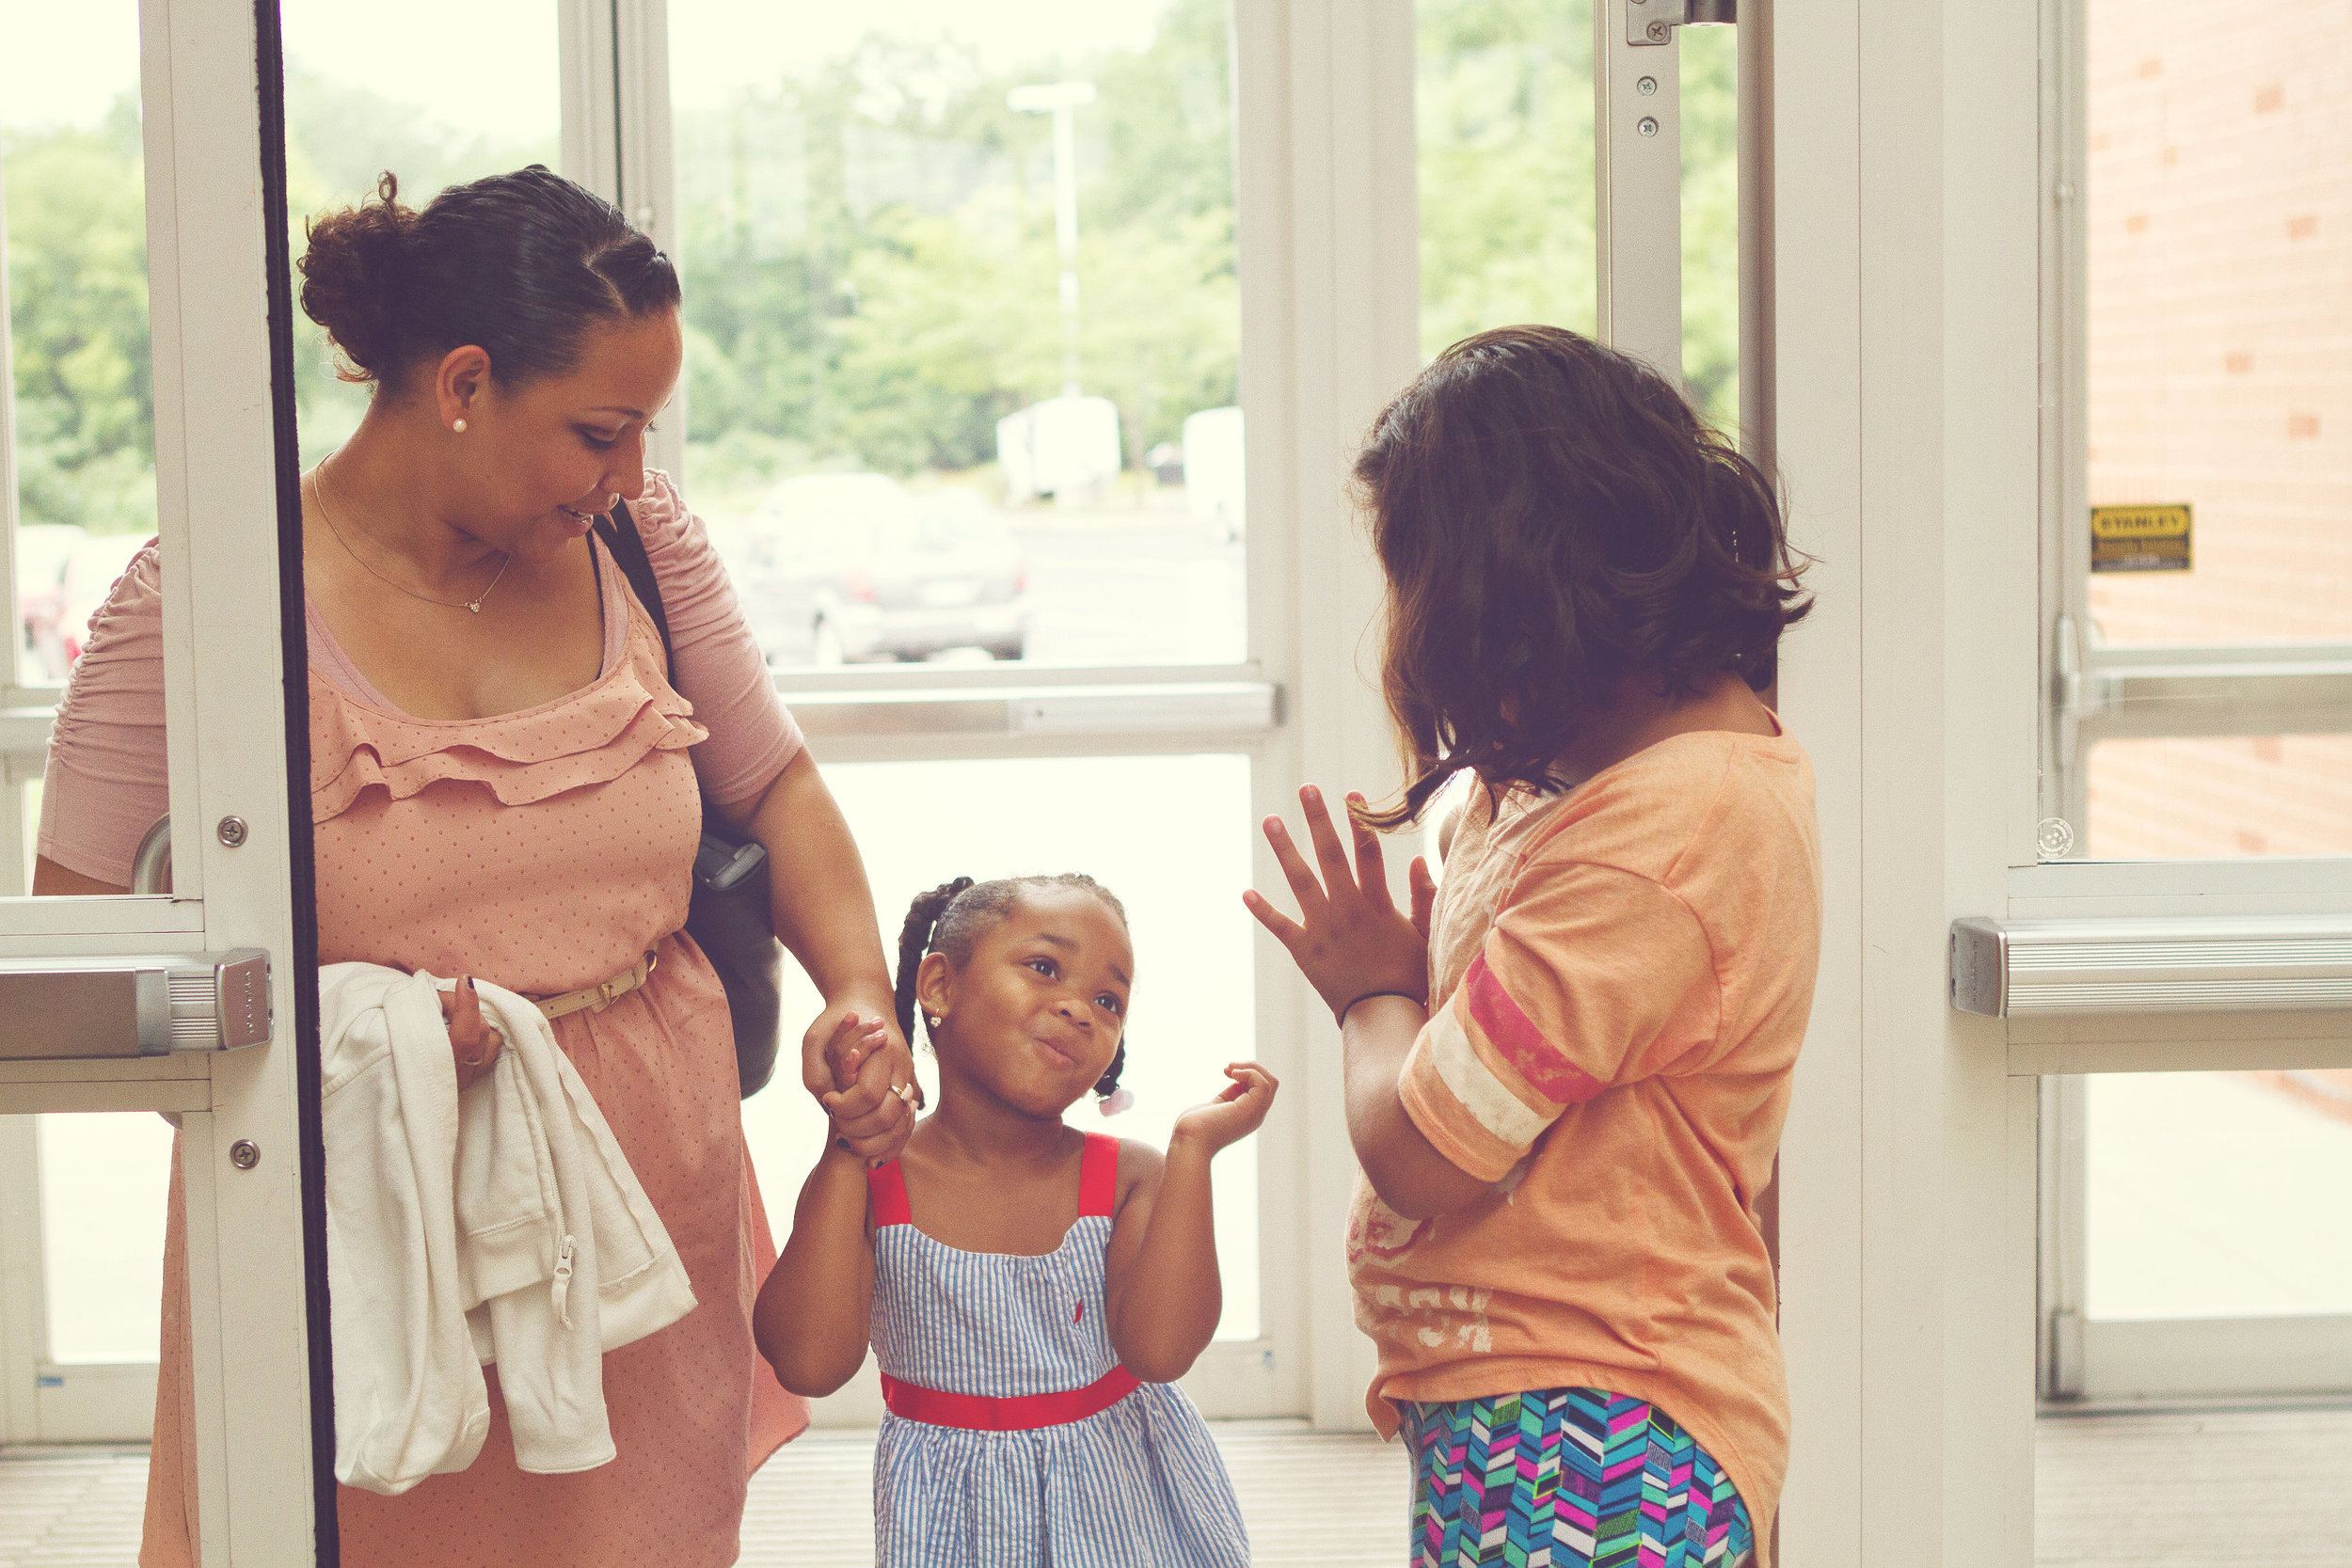 three-ways-to-welcome-new-families